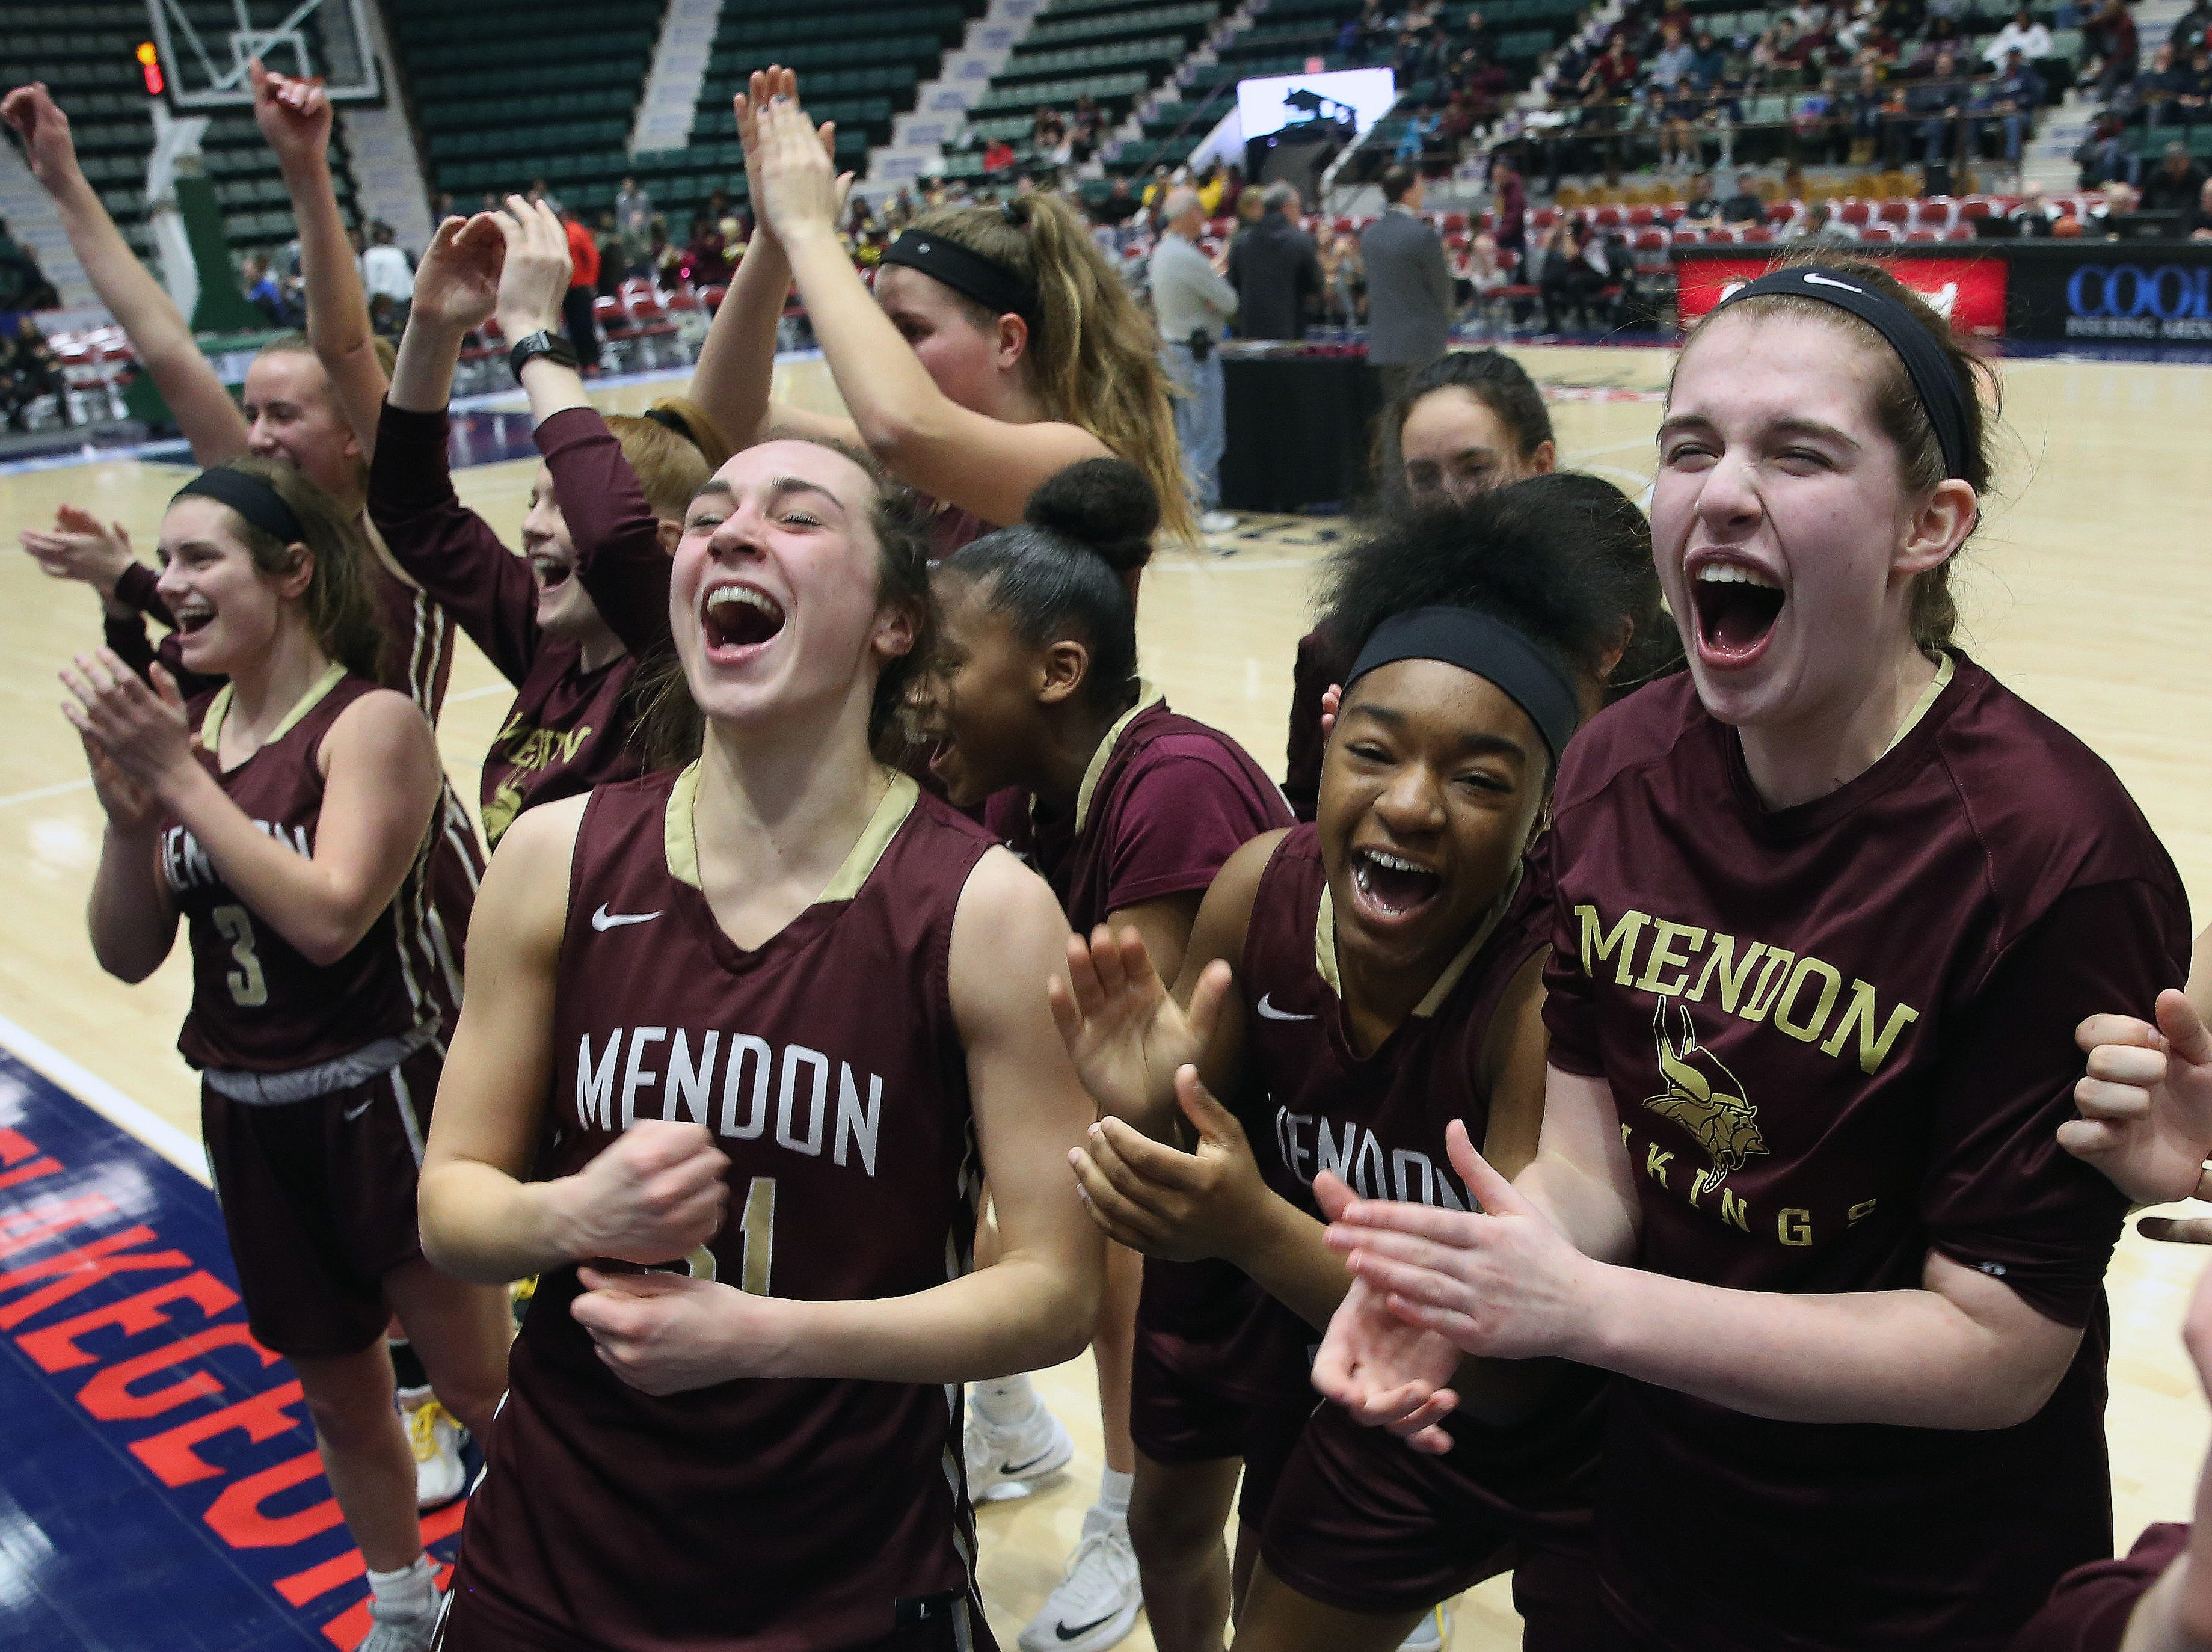 Pittsford Mendon players celebrate their victory over Staten Island in the championship game of the Federation Tournament at the Cool Insuring Arena in Glens Falls March 23, 2019.